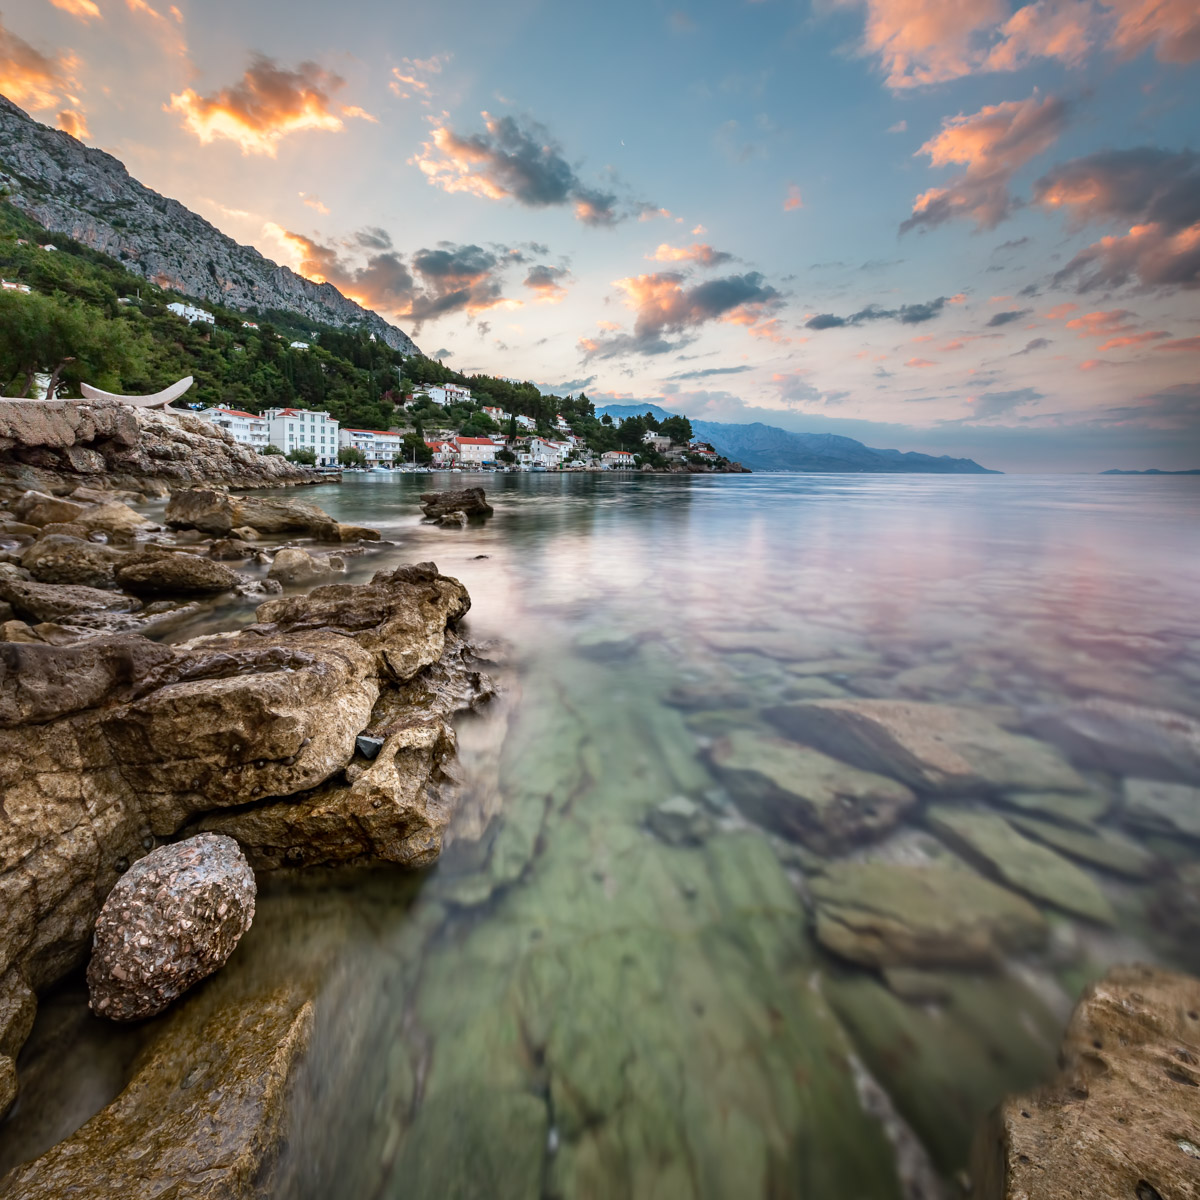 Rocky Beach, Mimice Village, Croatia